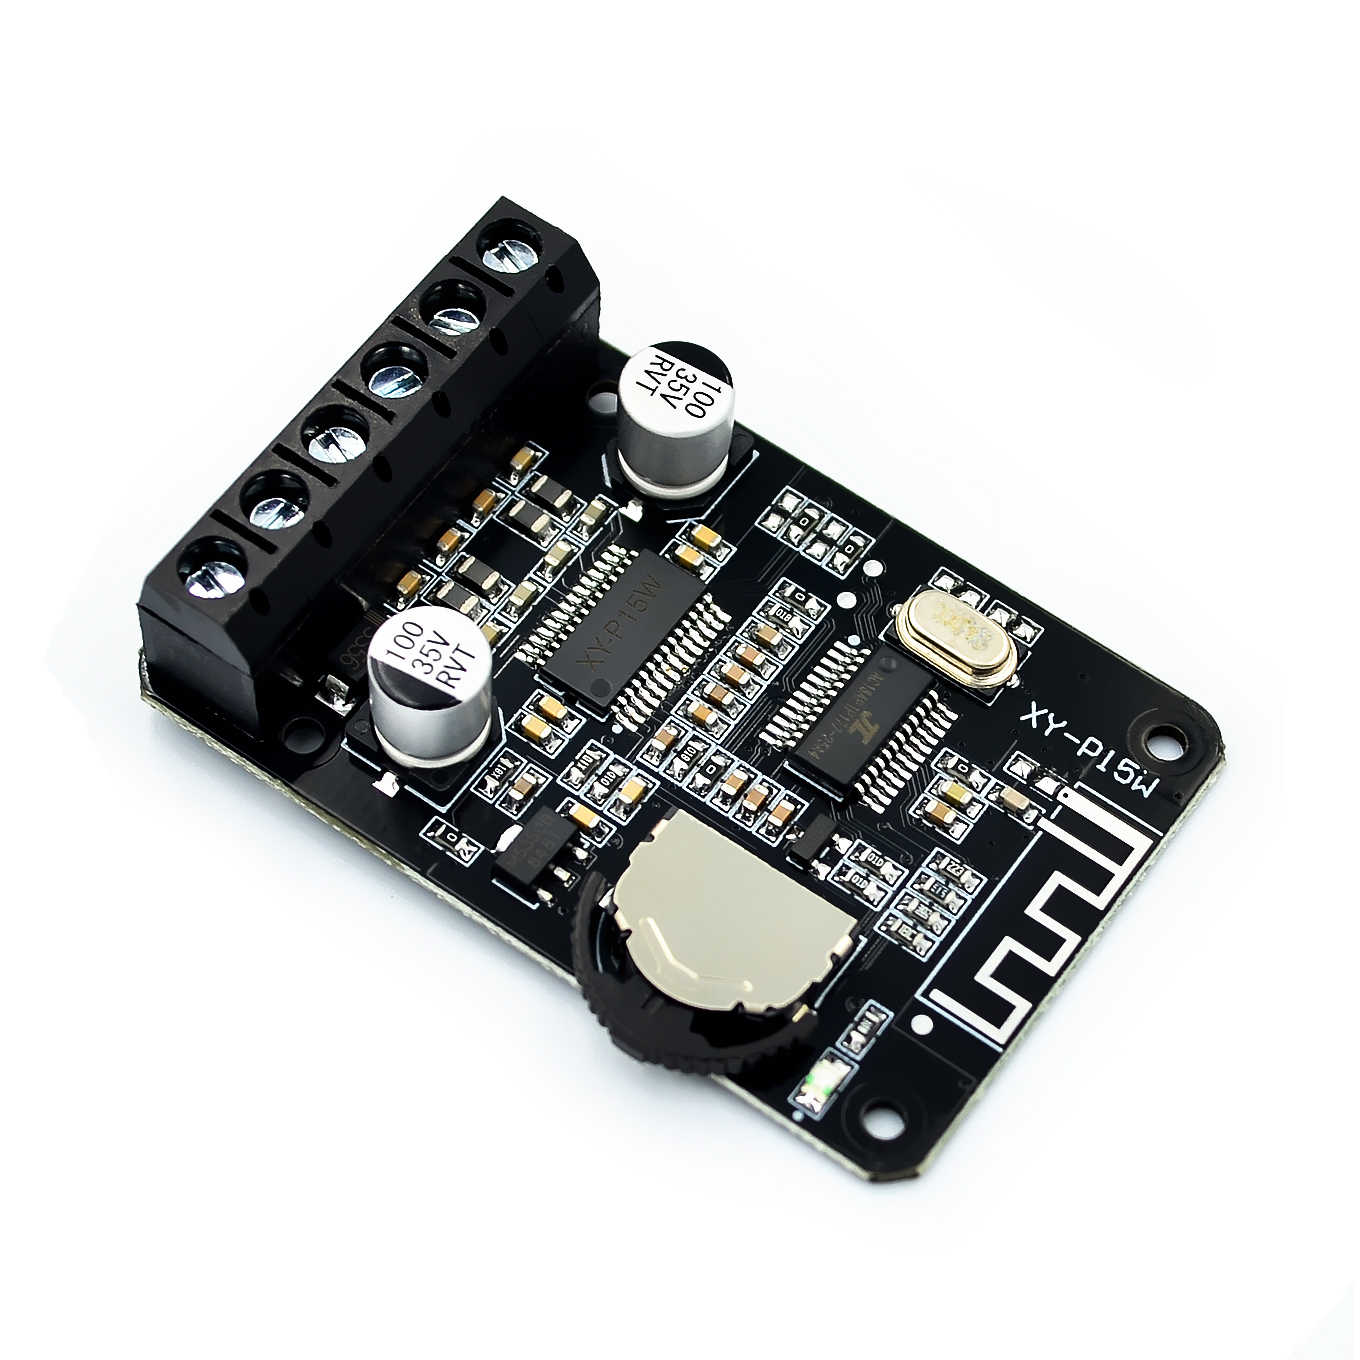 10 W/15 W/20 W/30 W/40 W Stereo Bluetooth Eindversterker Board 12 v/24 V High Power Digitale Versterker Module XY-P15W